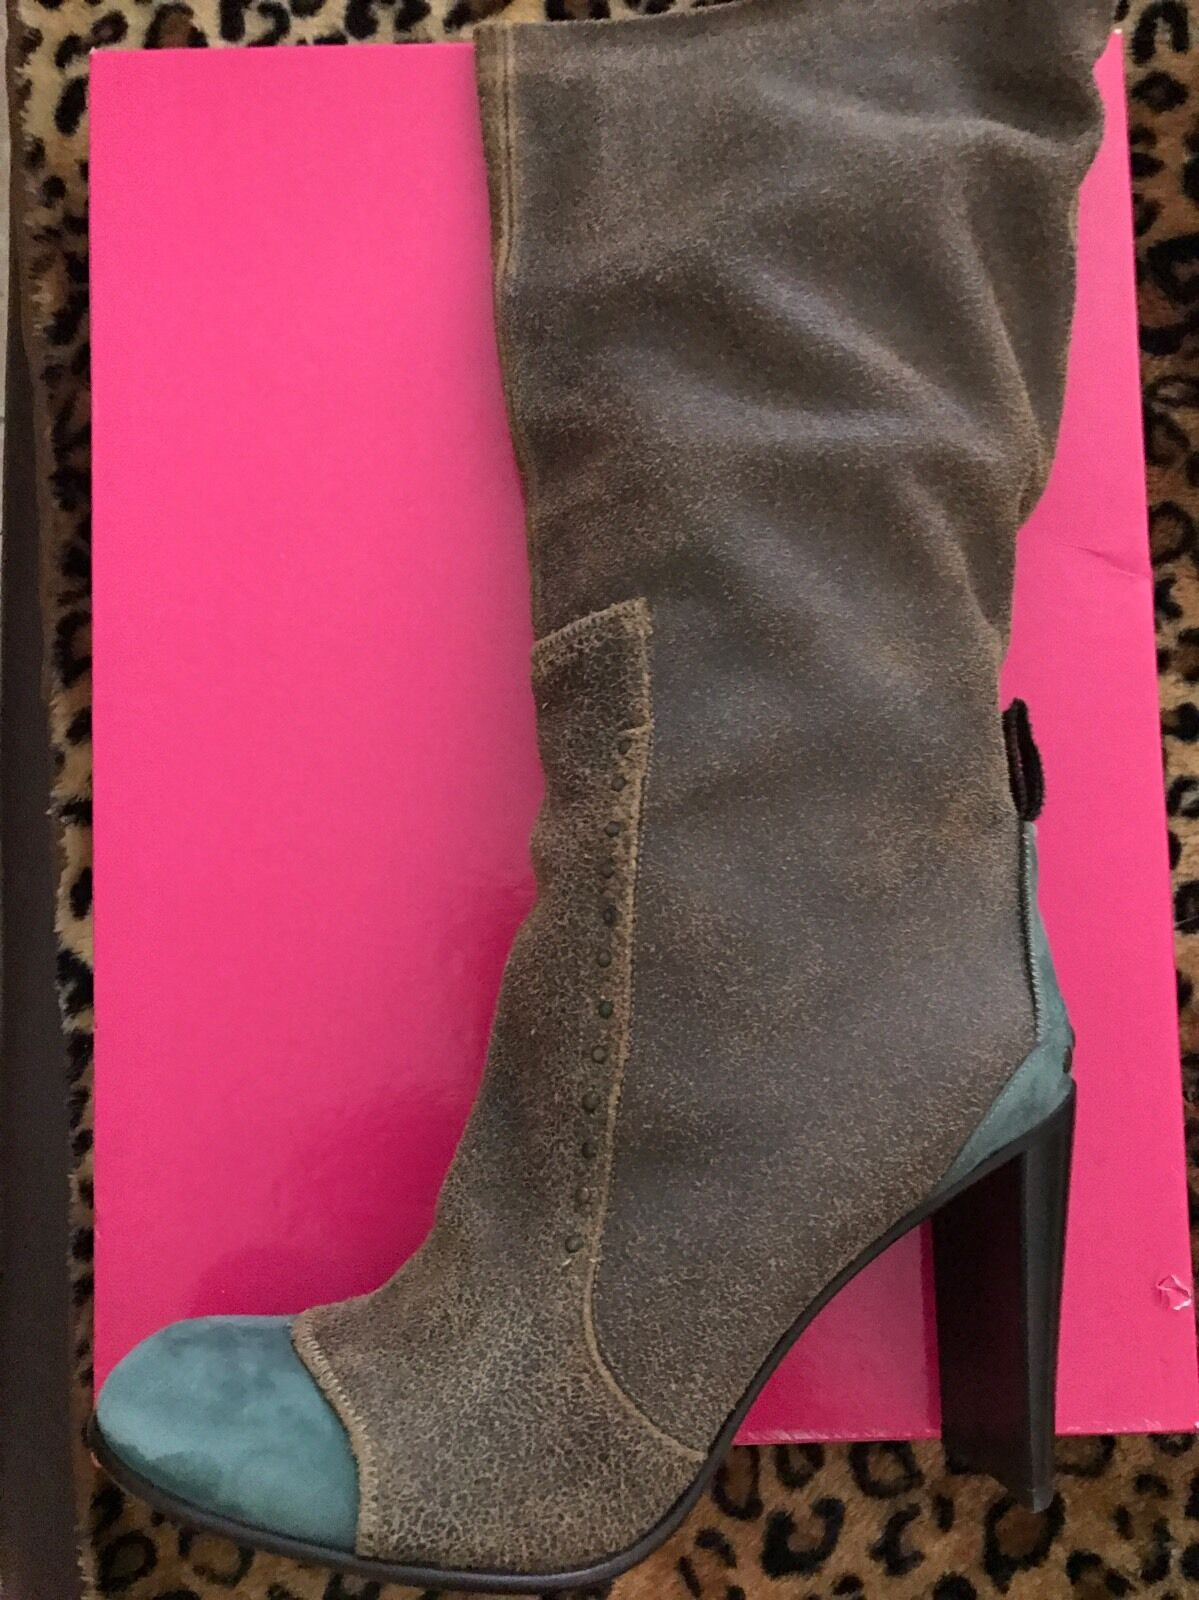 New Materia Prima By Gofferdo Fantini Distressed Leather Boots 41 Made In